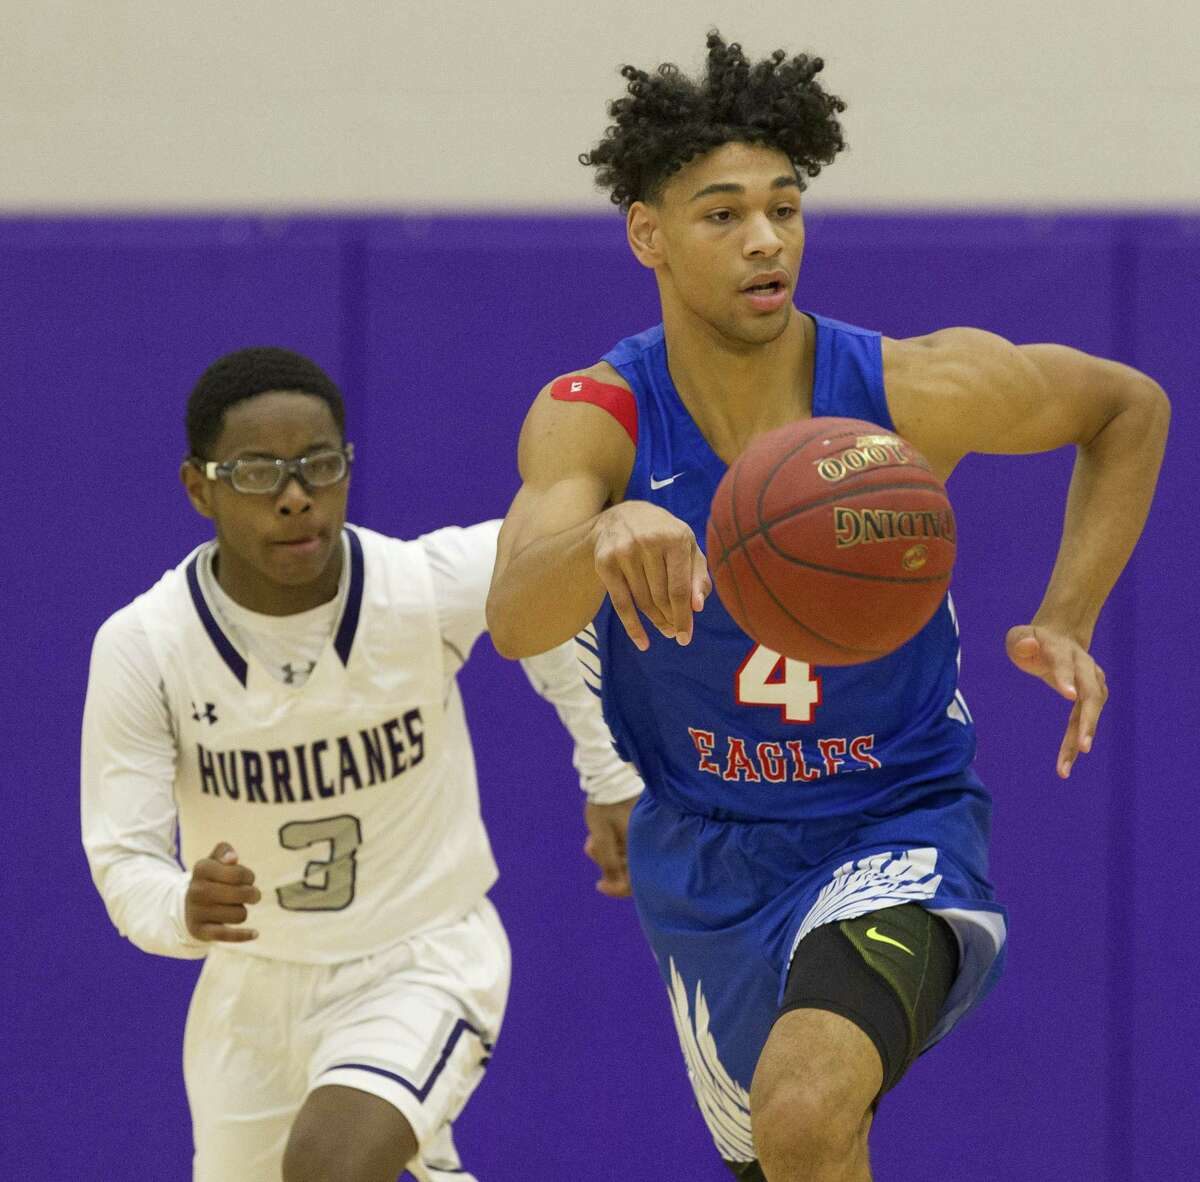 Oak Ridge's Griffin Datcher IV (4) is The Courier's Offensive MVP. In 2018-19, the sophomore averaged 17.2 points, 5.7 rebounds, 2.7 assists and 1.7 steals per game.